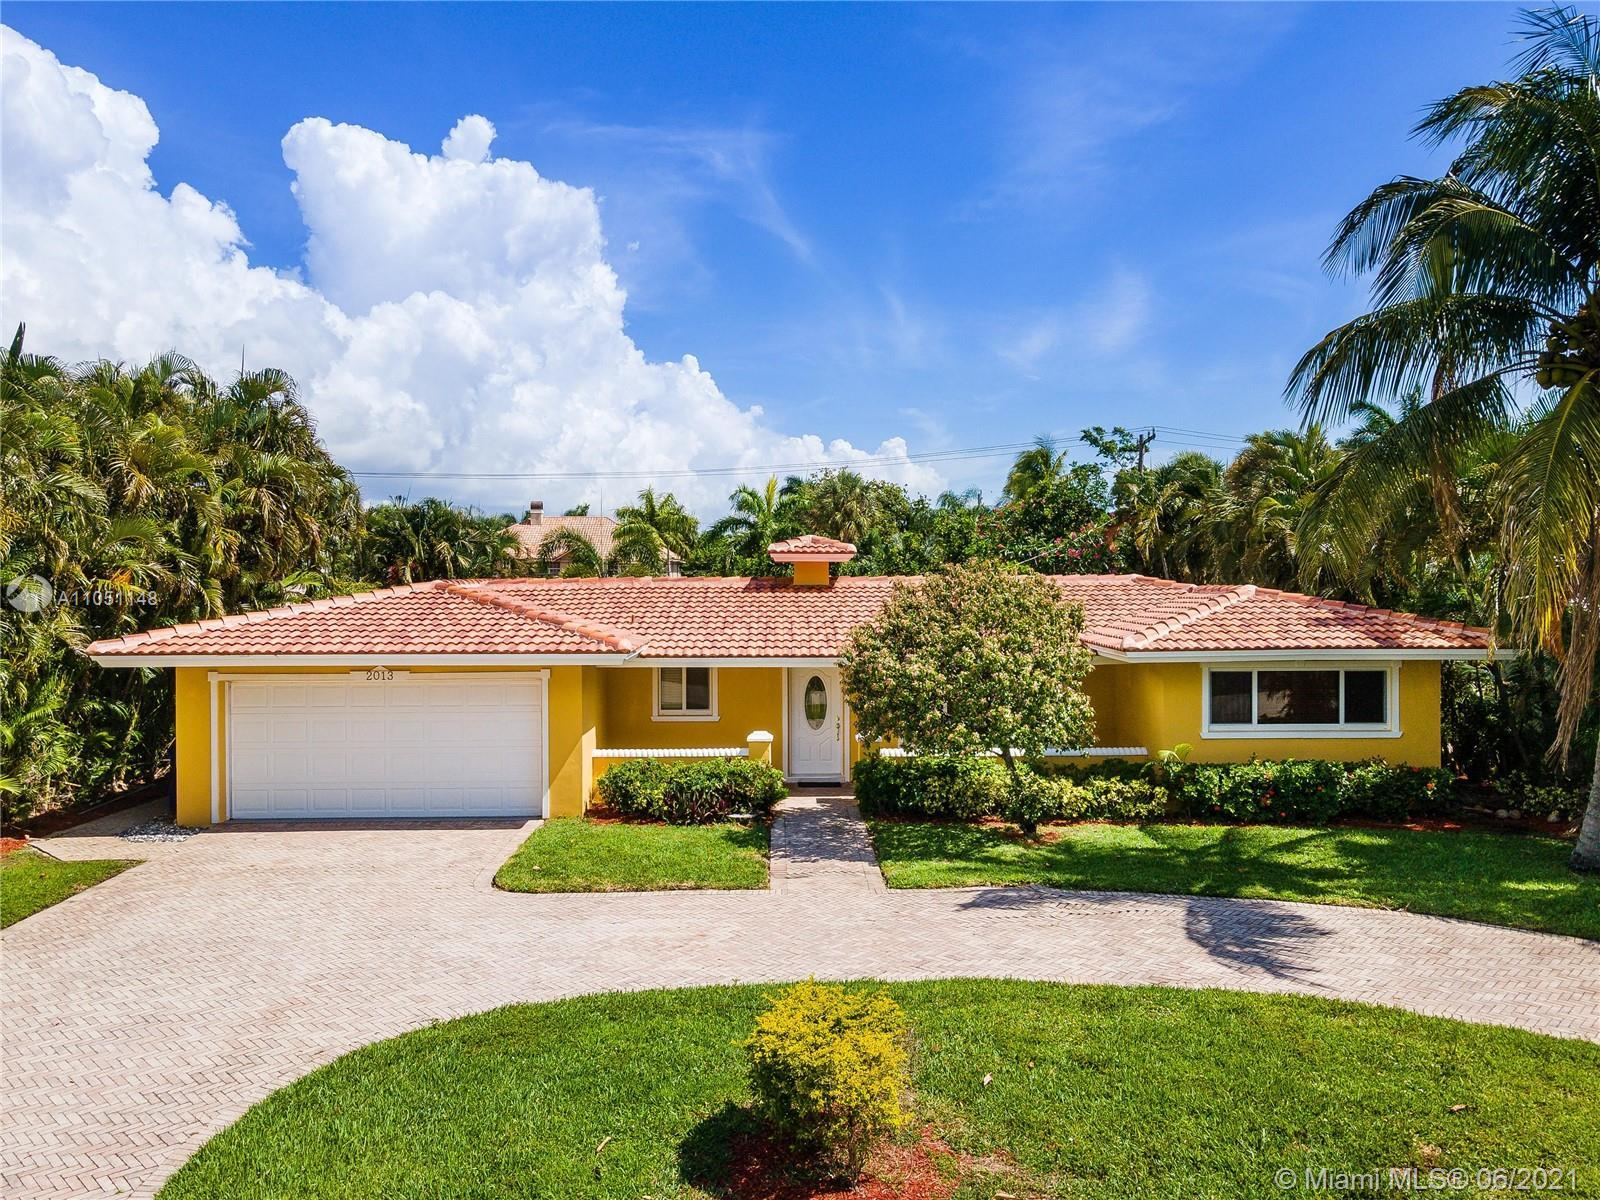 Beautifully updated and spacious 3 Bedroom 2 Full Bath residence within the gated community of Bel A